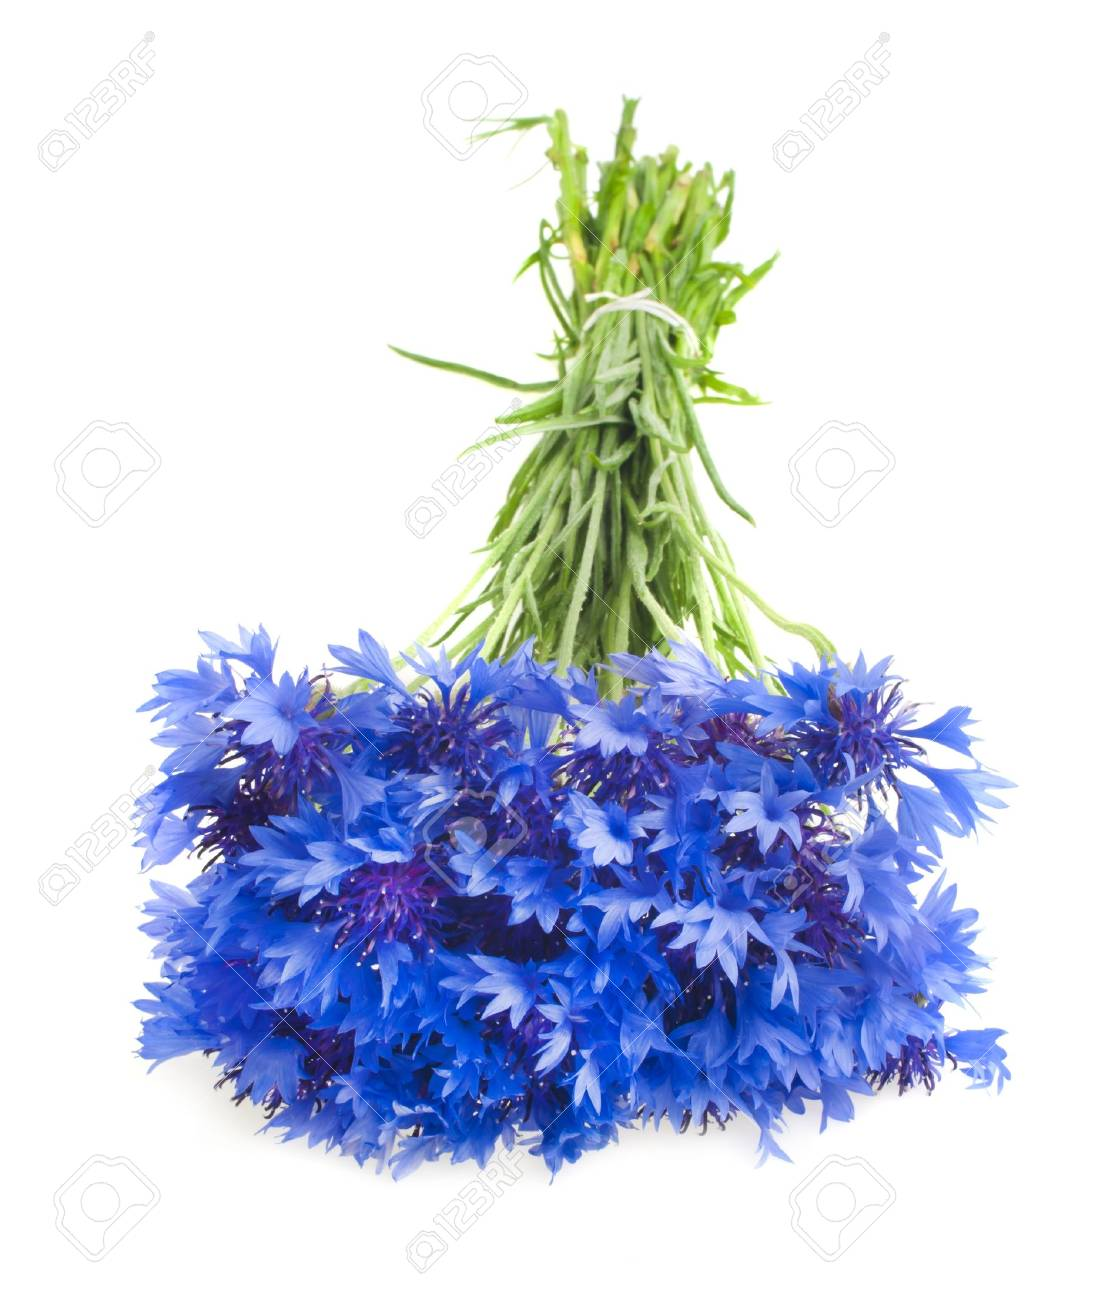 Beautiful blue cornflower isolated on white background Stock Photo - 17138124